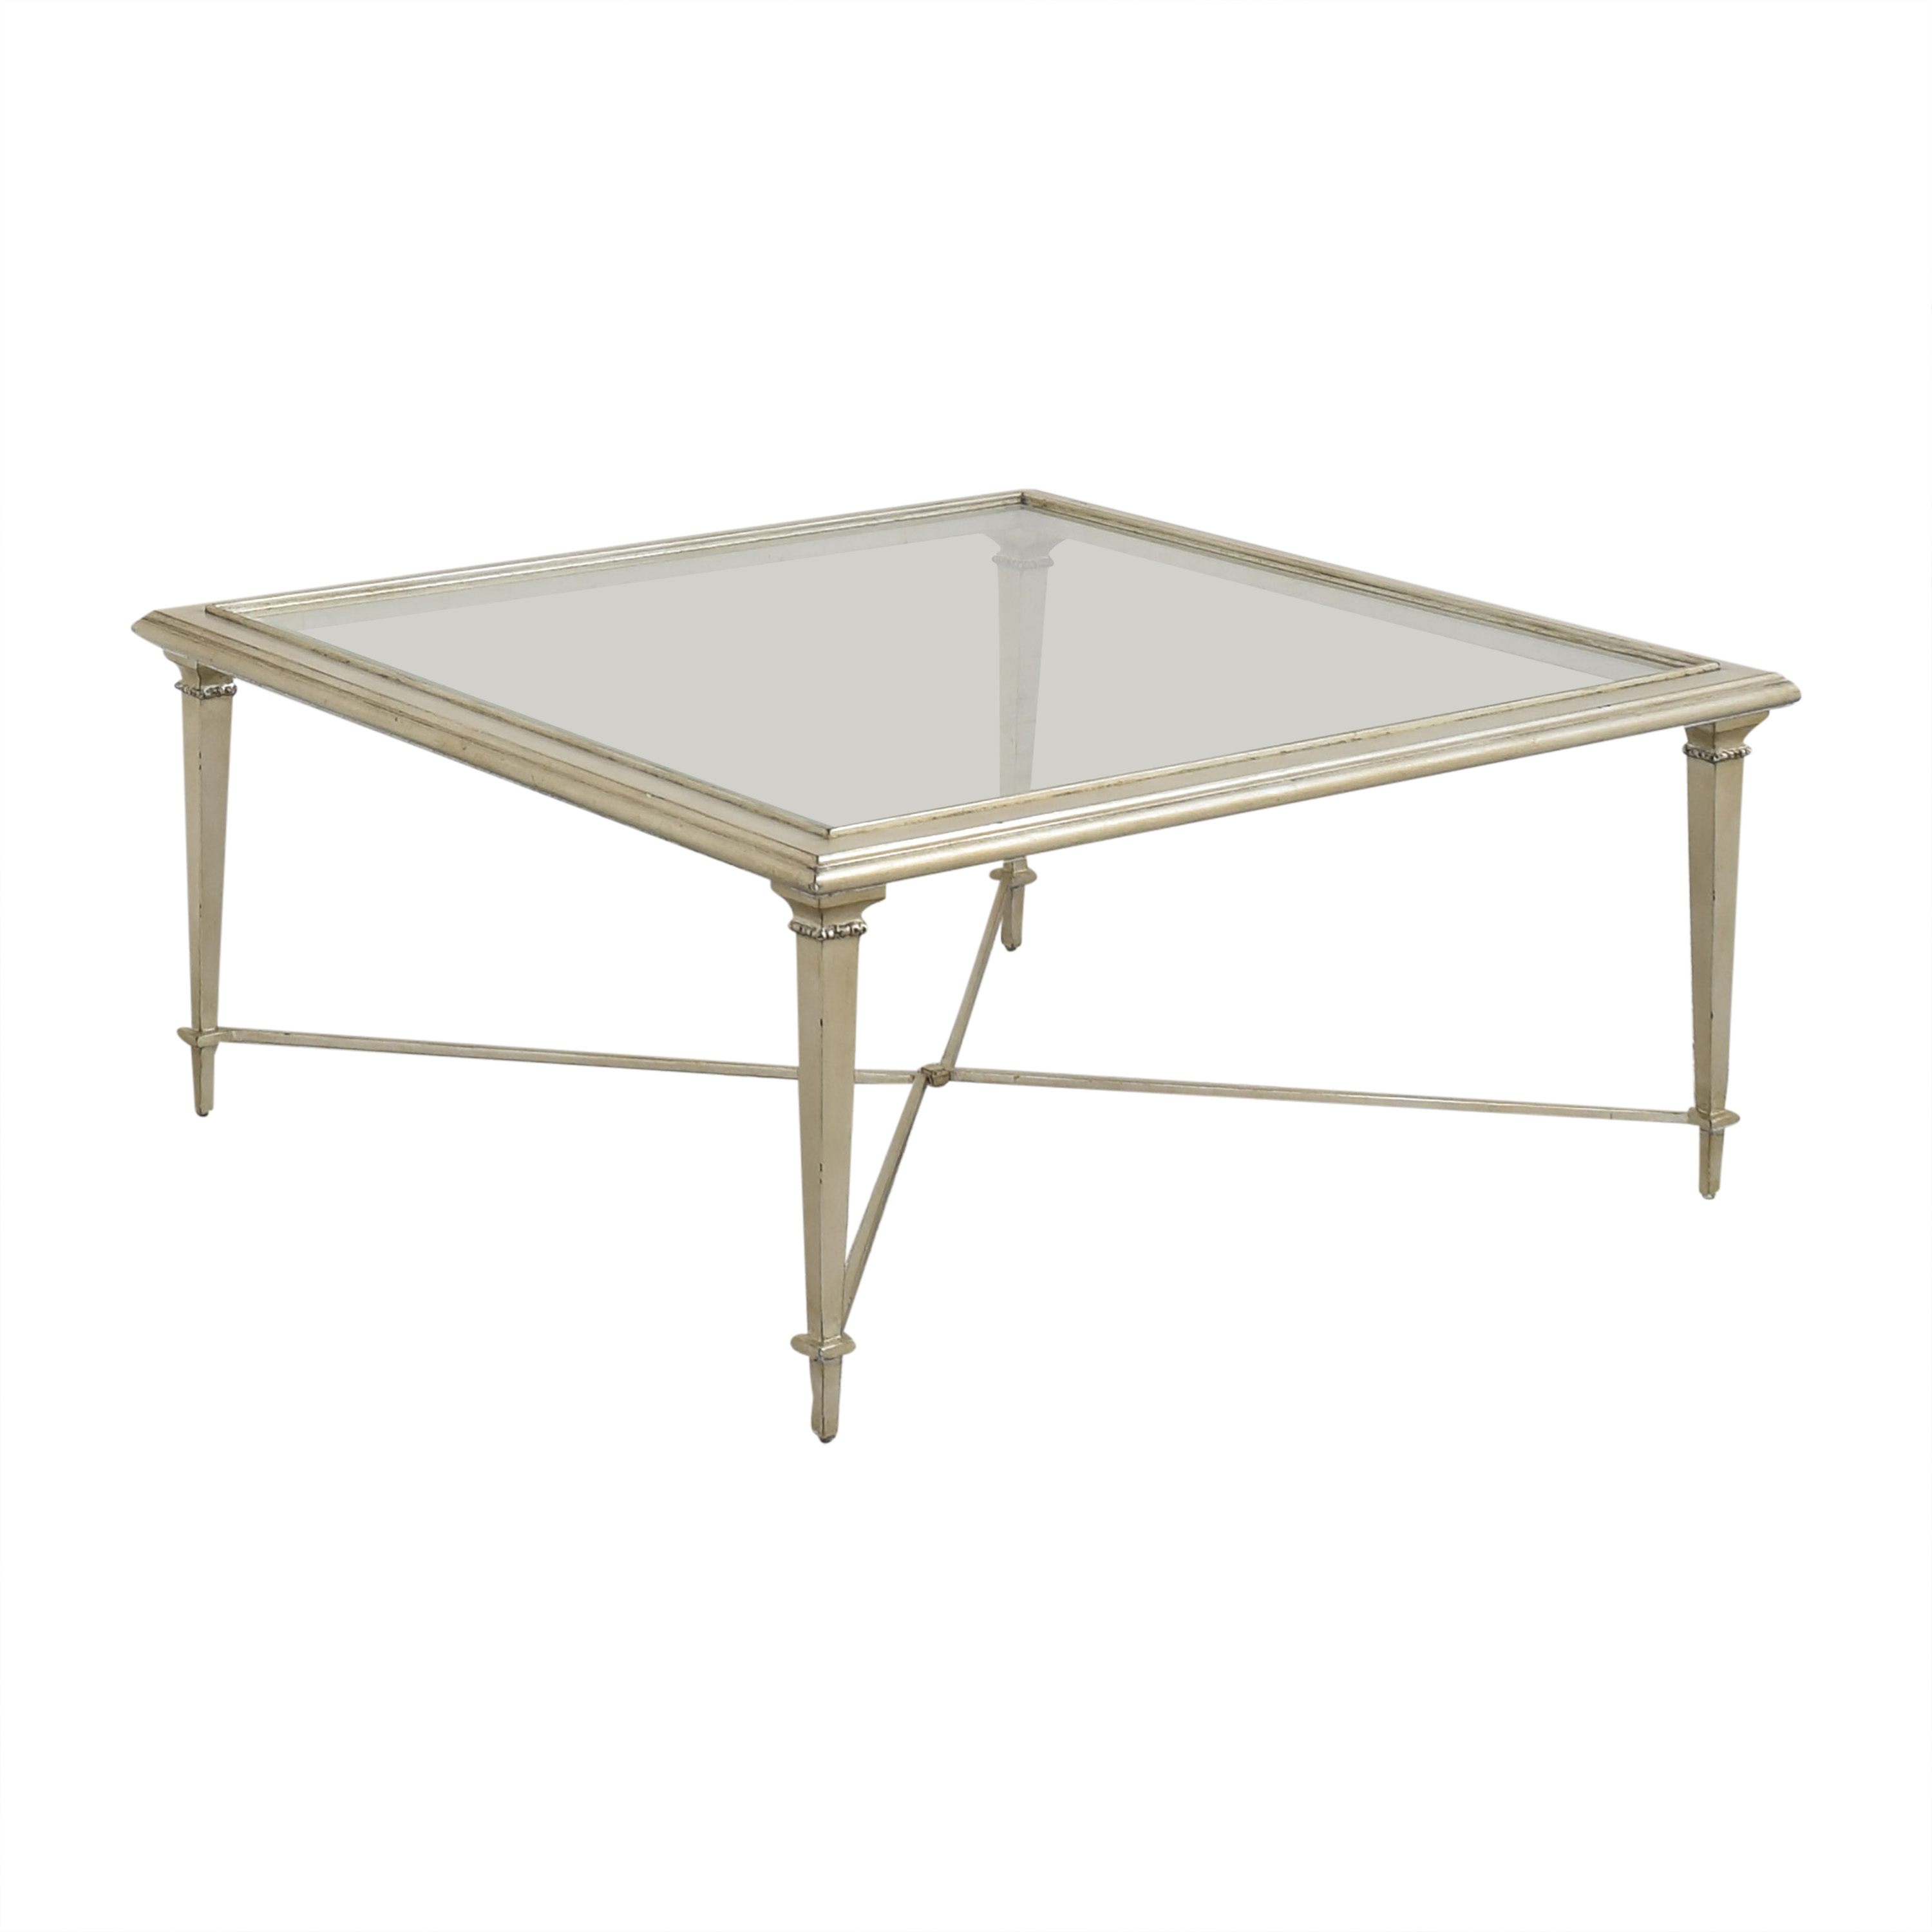 buy Scully & Scully Bristol Square Coffee Table Scully & Scully Coffee Tables